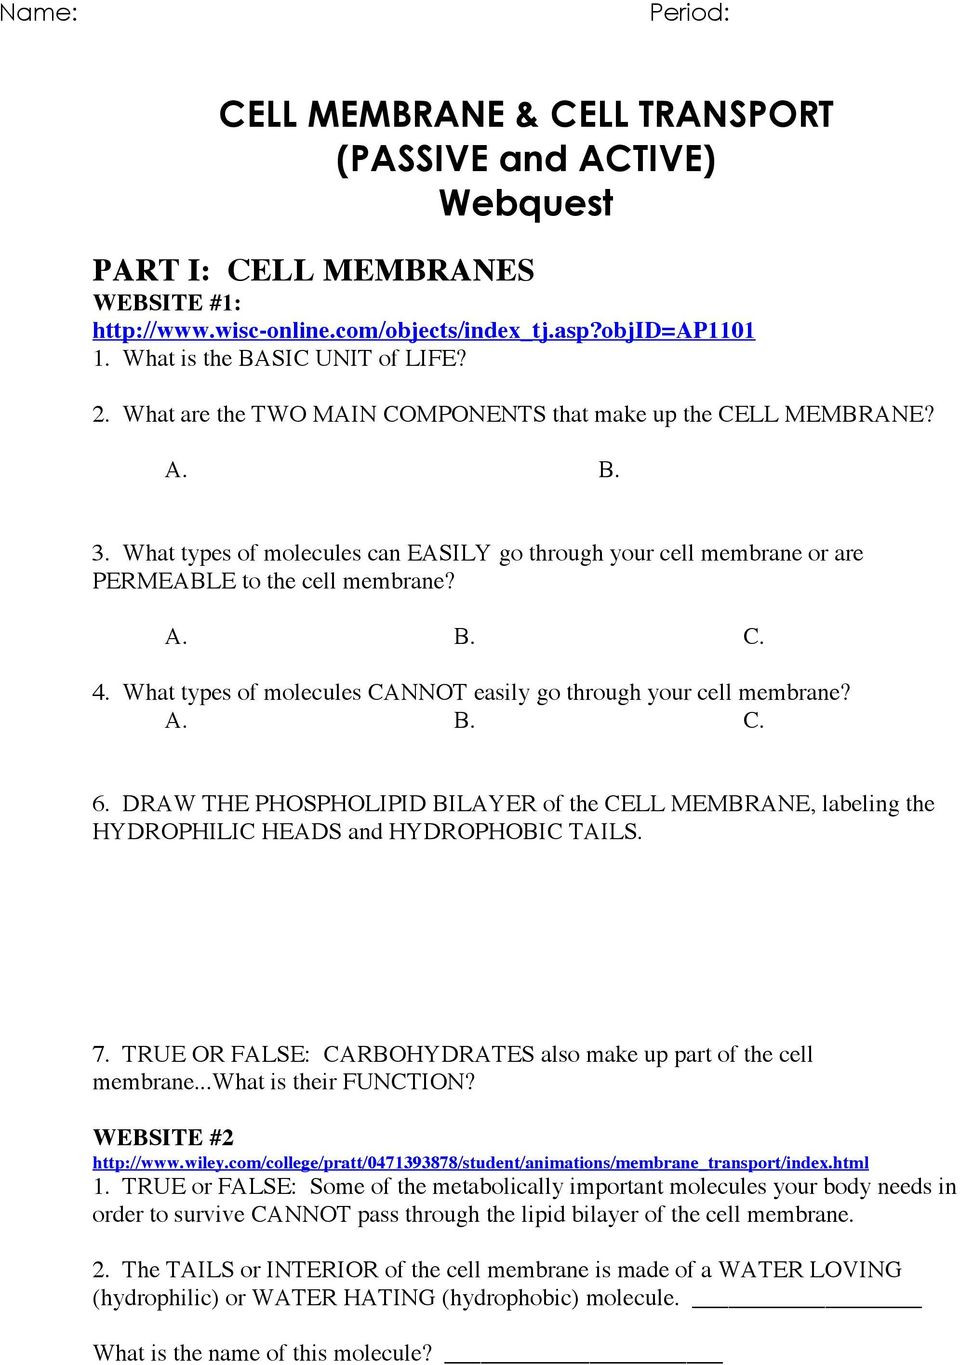 Cell Transport Worksheet Biology Answers Cell Membrane & Cell Transport Passive and Active Webquest